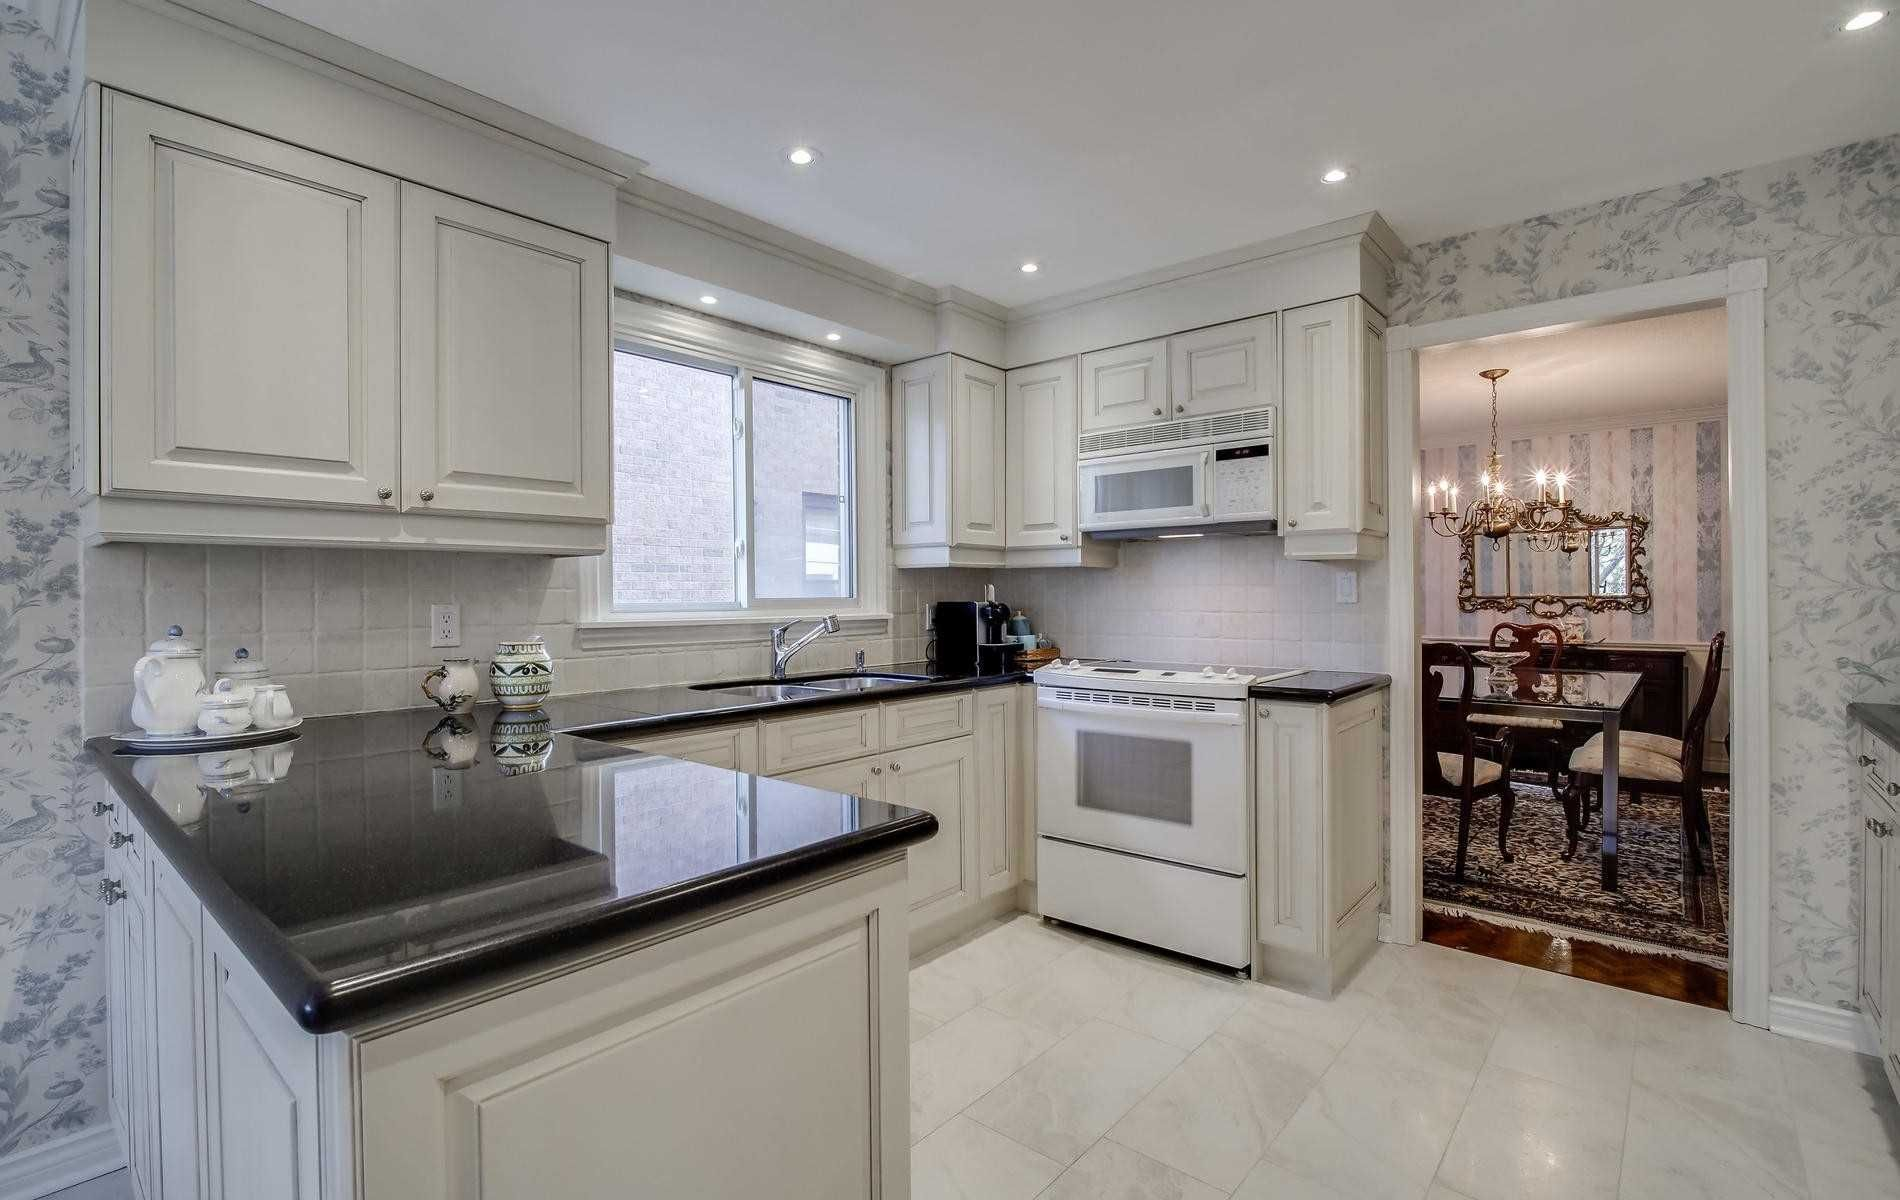 Photo 7: Photos: 498 Hidden Trail in Toronto: Westminster-Branson House (2-Storey) for sale (Toronto C07)  : MLS®# C4709173